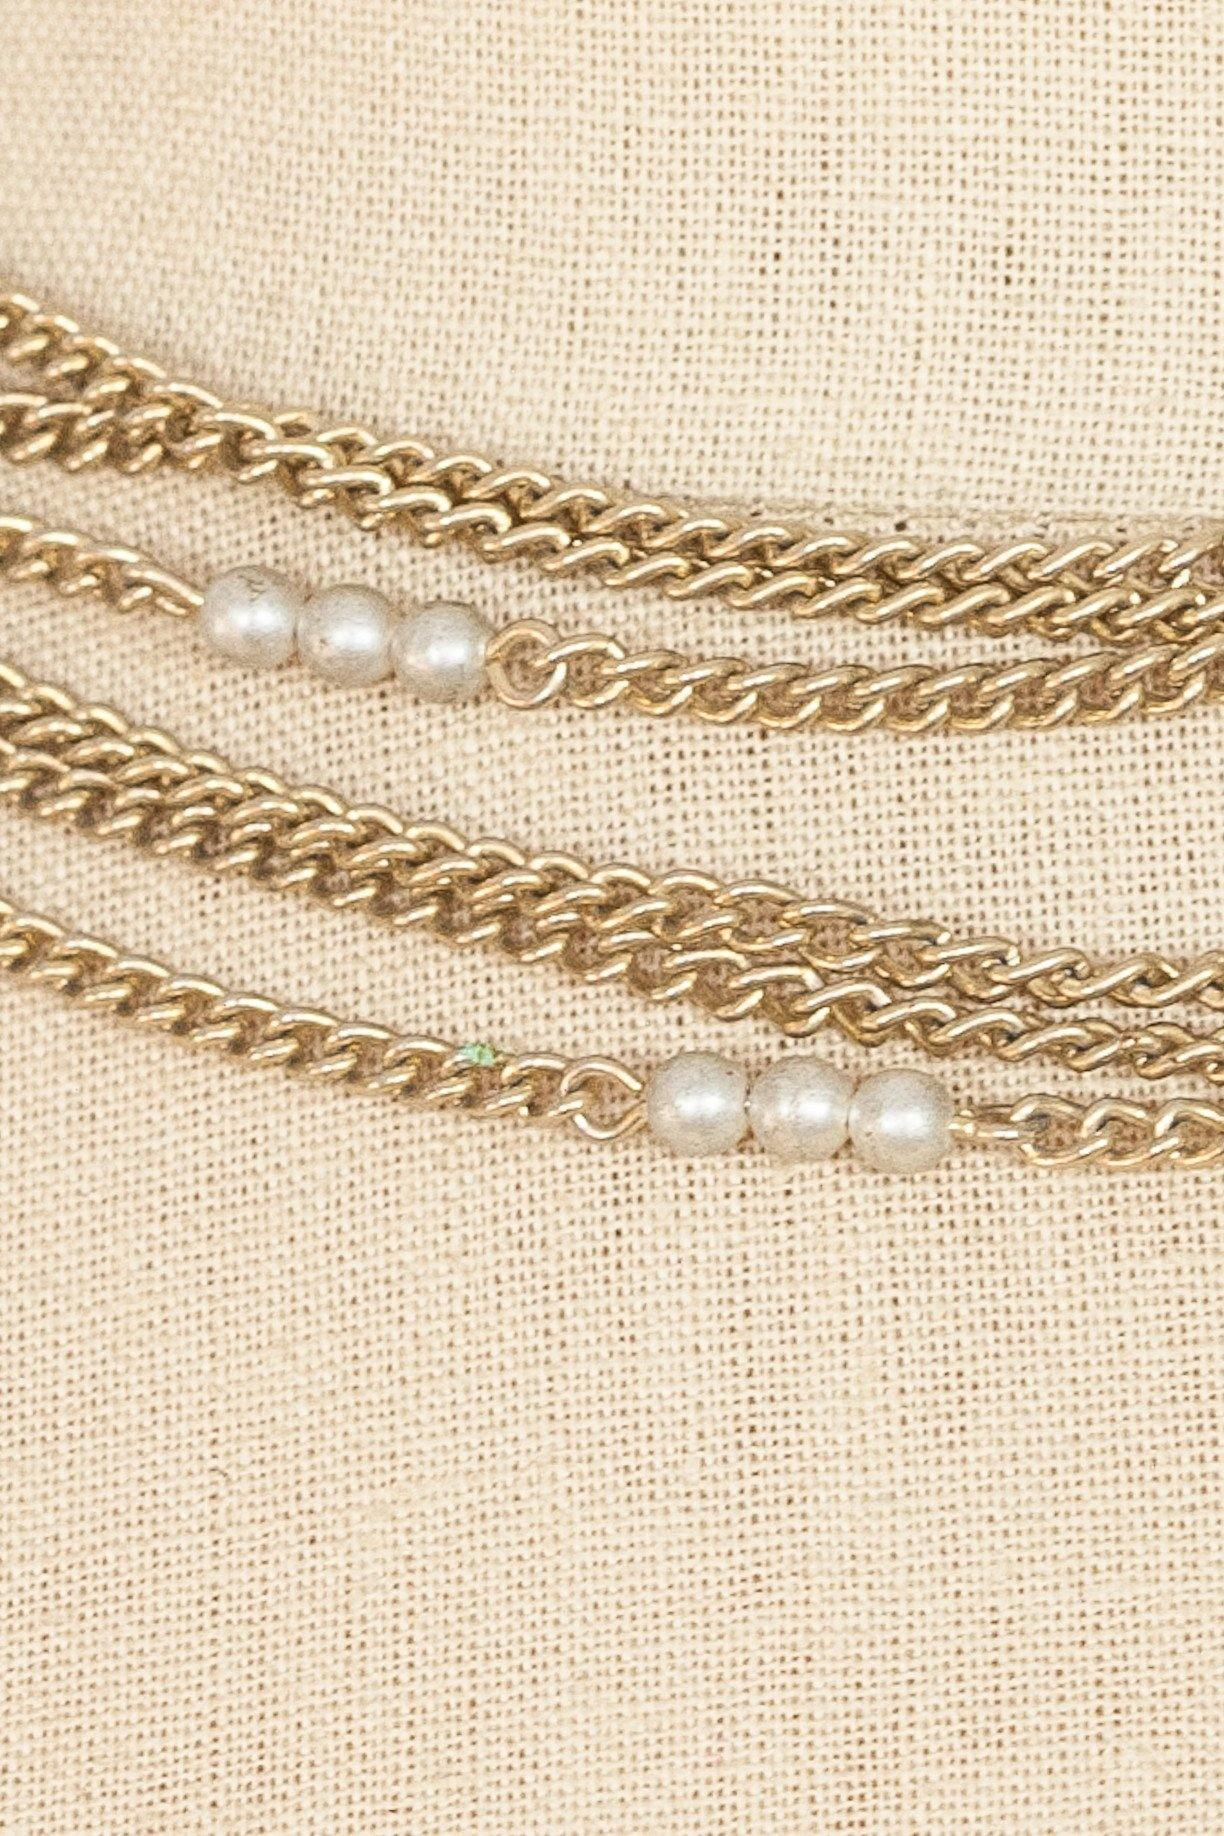 50's__Vintage__Pearl Multi Chain Necklace